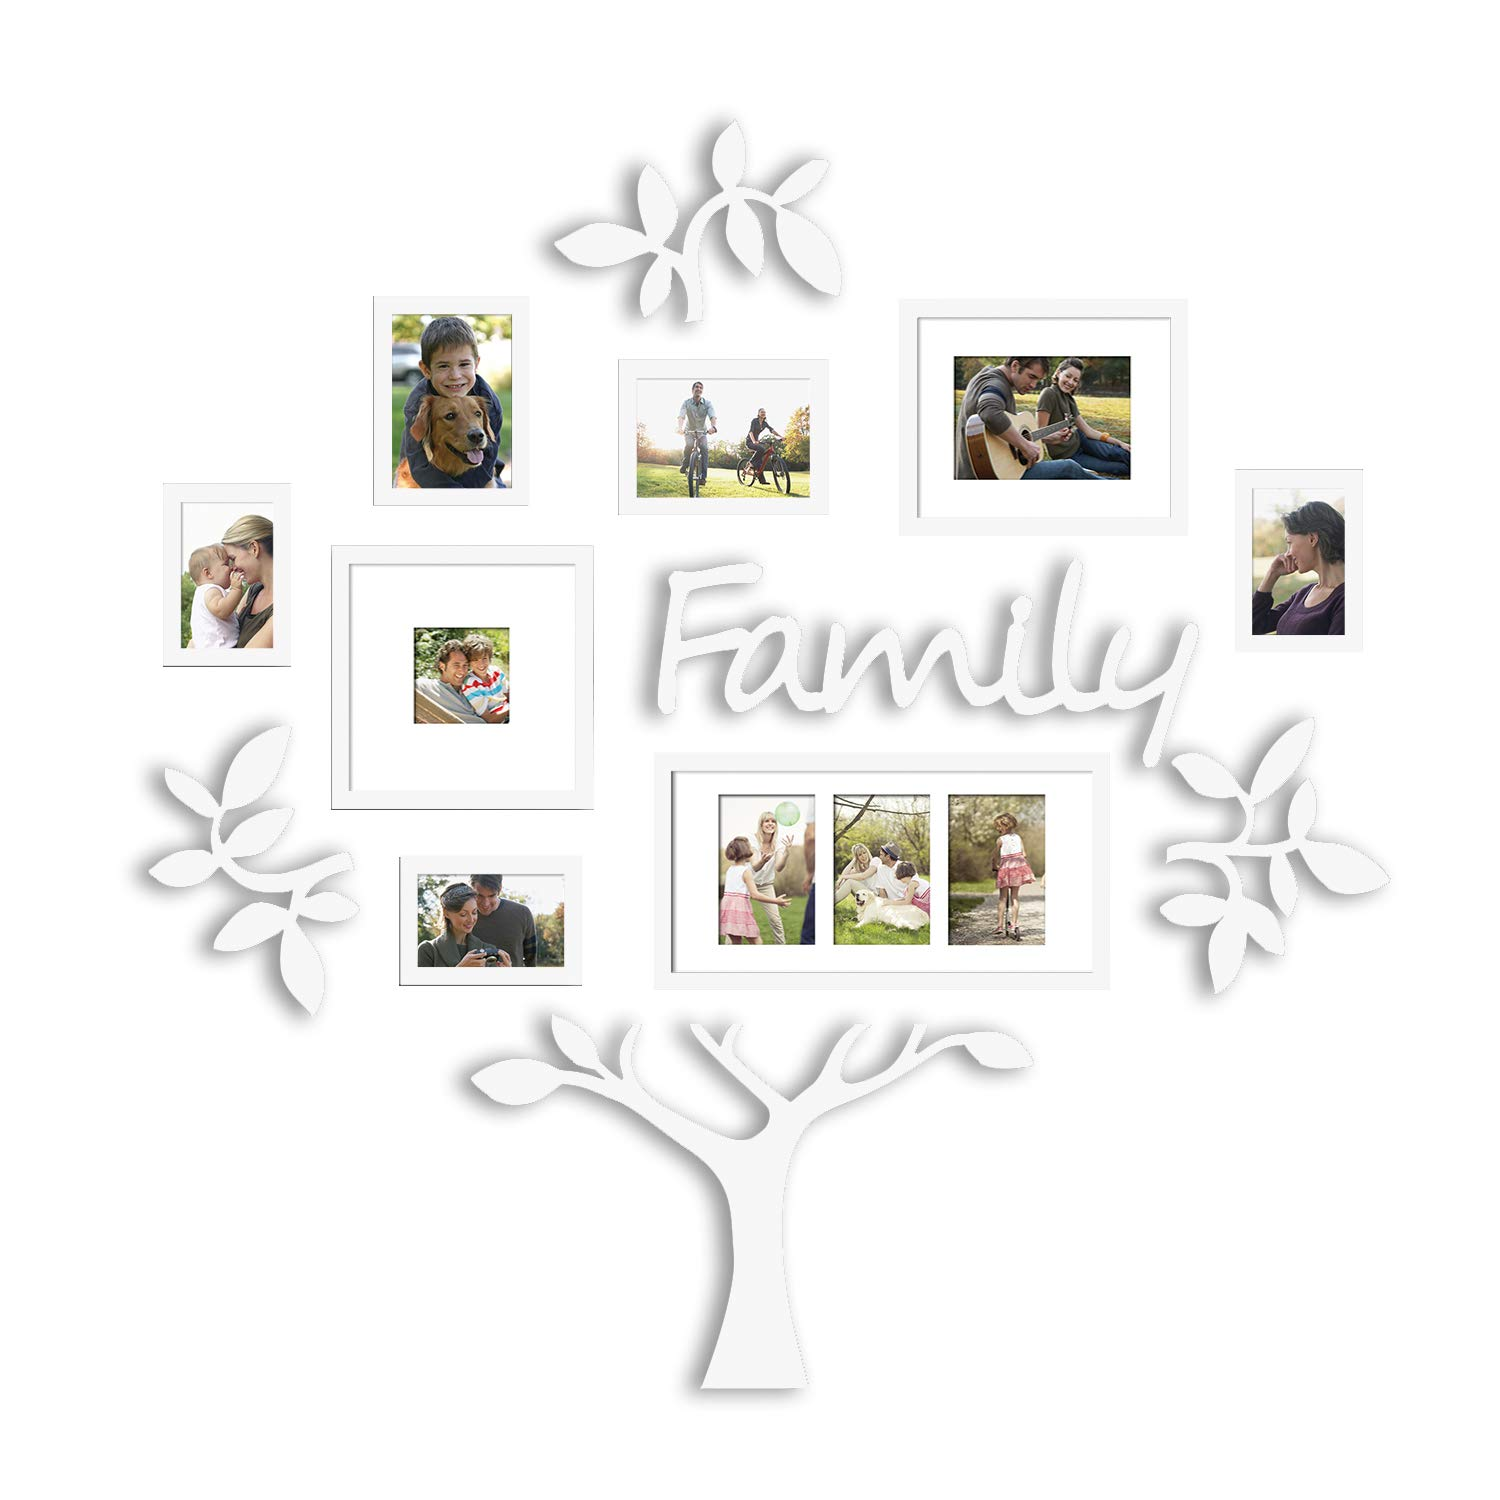 Jerry & Maggie - Photo Frame   Plaque College Frame - Wall Decoration Combination - White PVC Picture Frame Selfie Gallery Collage Hanging Template & Wall Mounting Design   Family Tree